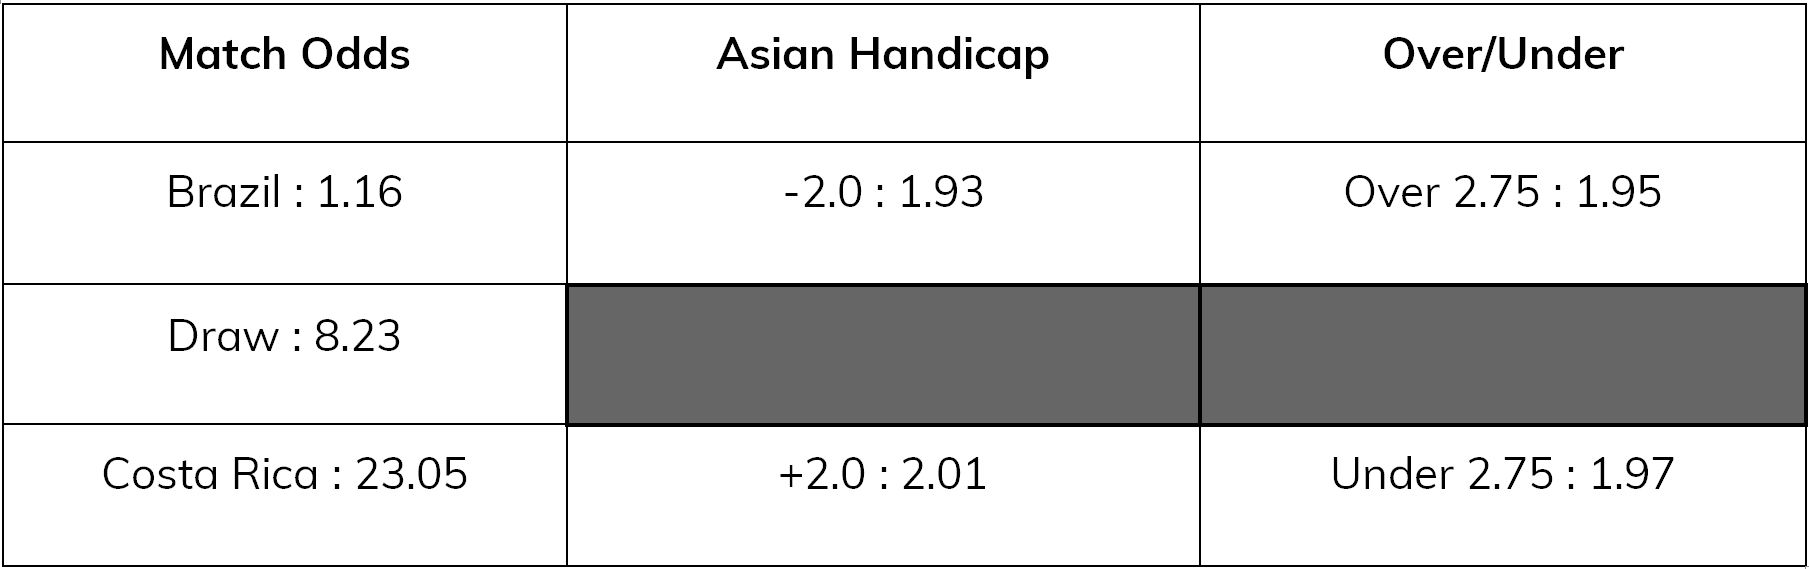 brazil-v-costa-rica-asian-handicap-eastbridge1